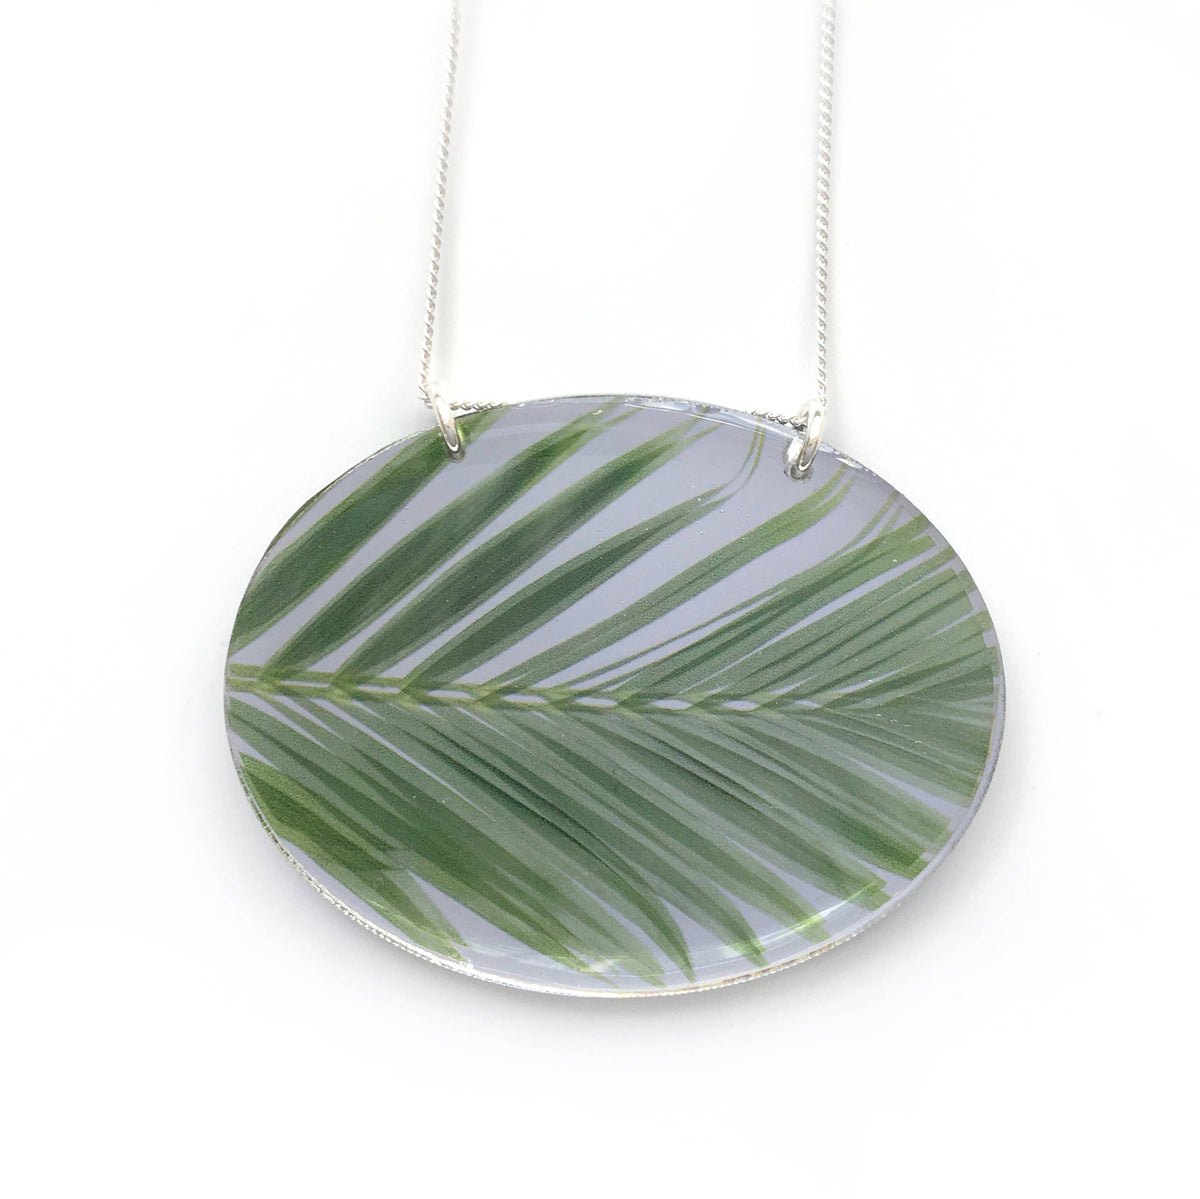 Black Drop Designs - Mirror Oval Palm Necklace